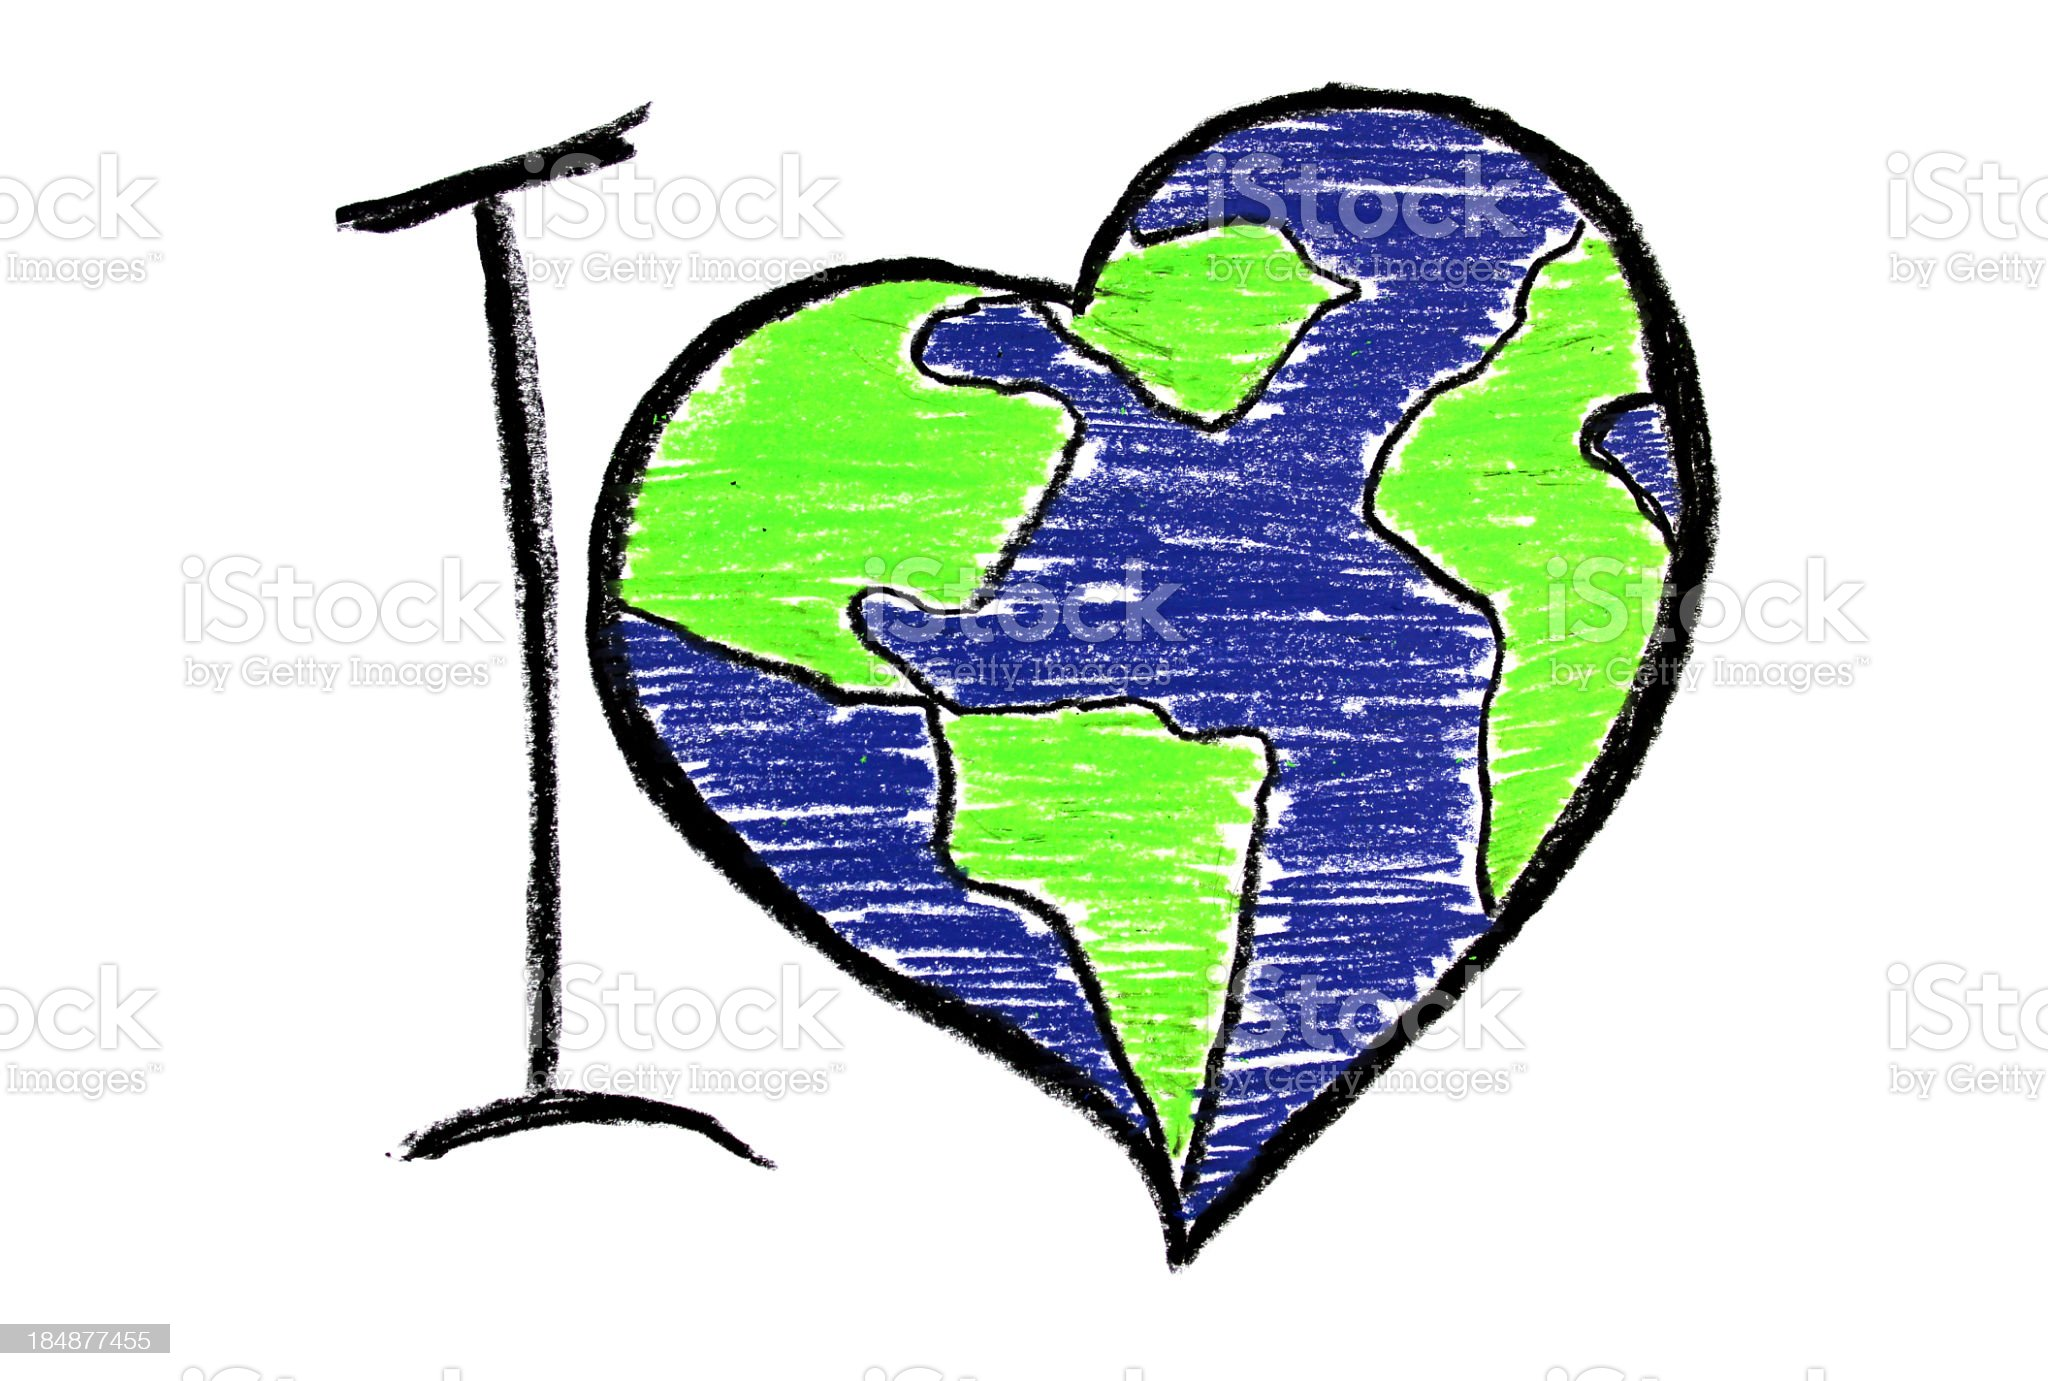 I love the earth illustration for earth day royalty-free stock photo